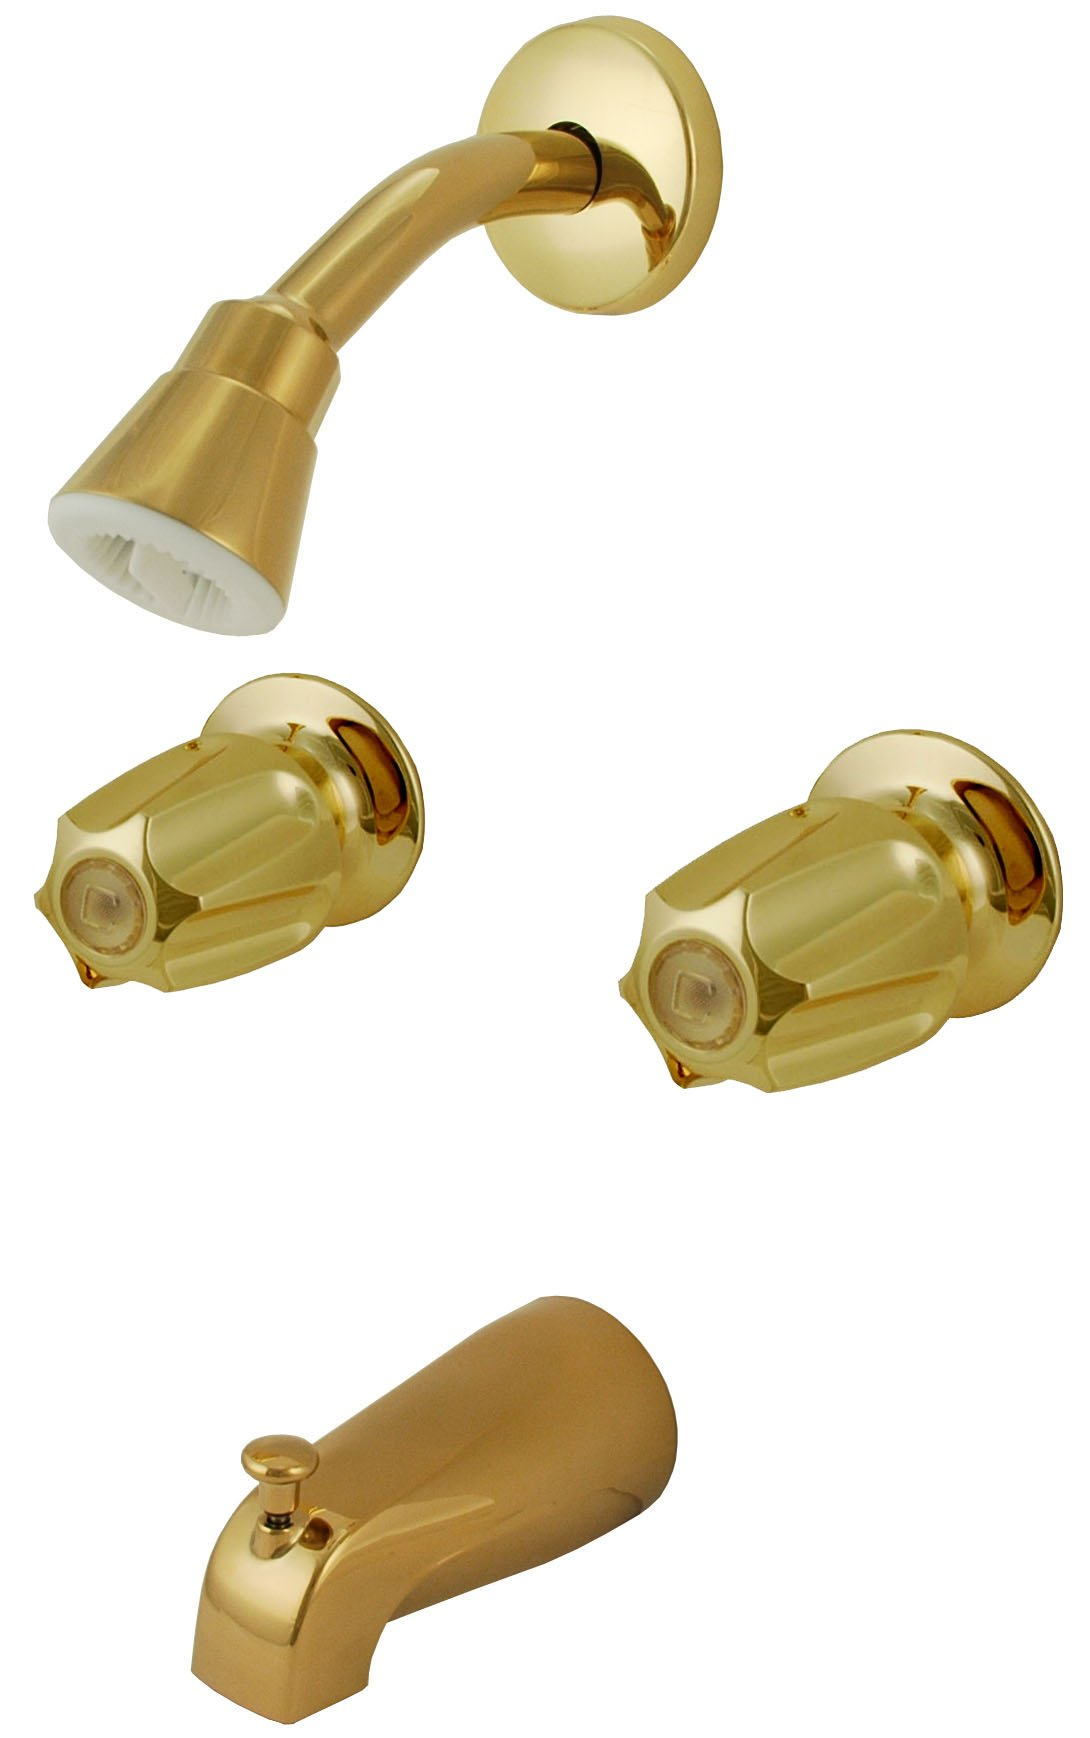 Trim Kit for 2-handle Shower Valve, Fit Price Pfister Compression Stem Shower, Polished Brass Finish -By Plumb USA 34205PVD by PlumbUSA